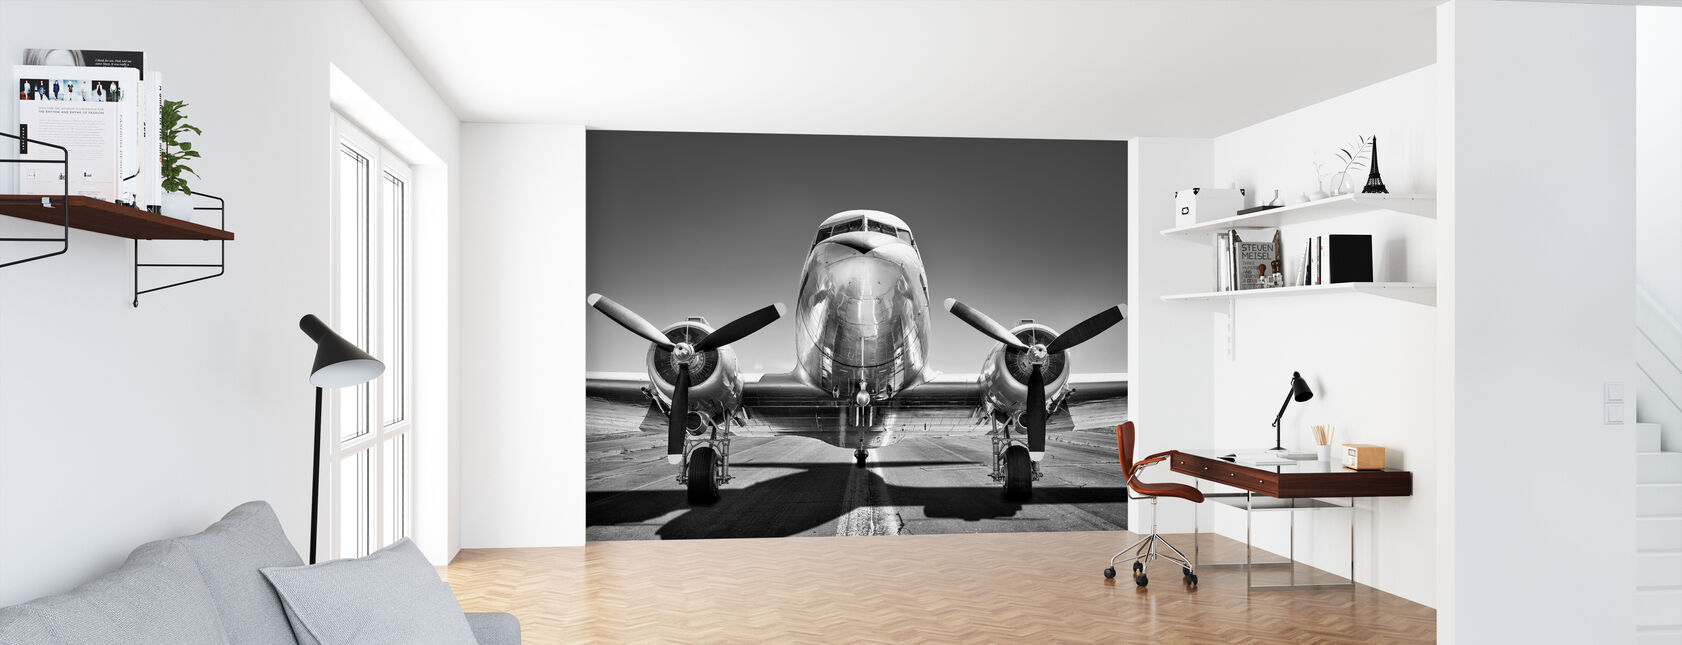 Vintage Airplane on a Runway, black and white - Wallpaper - Office